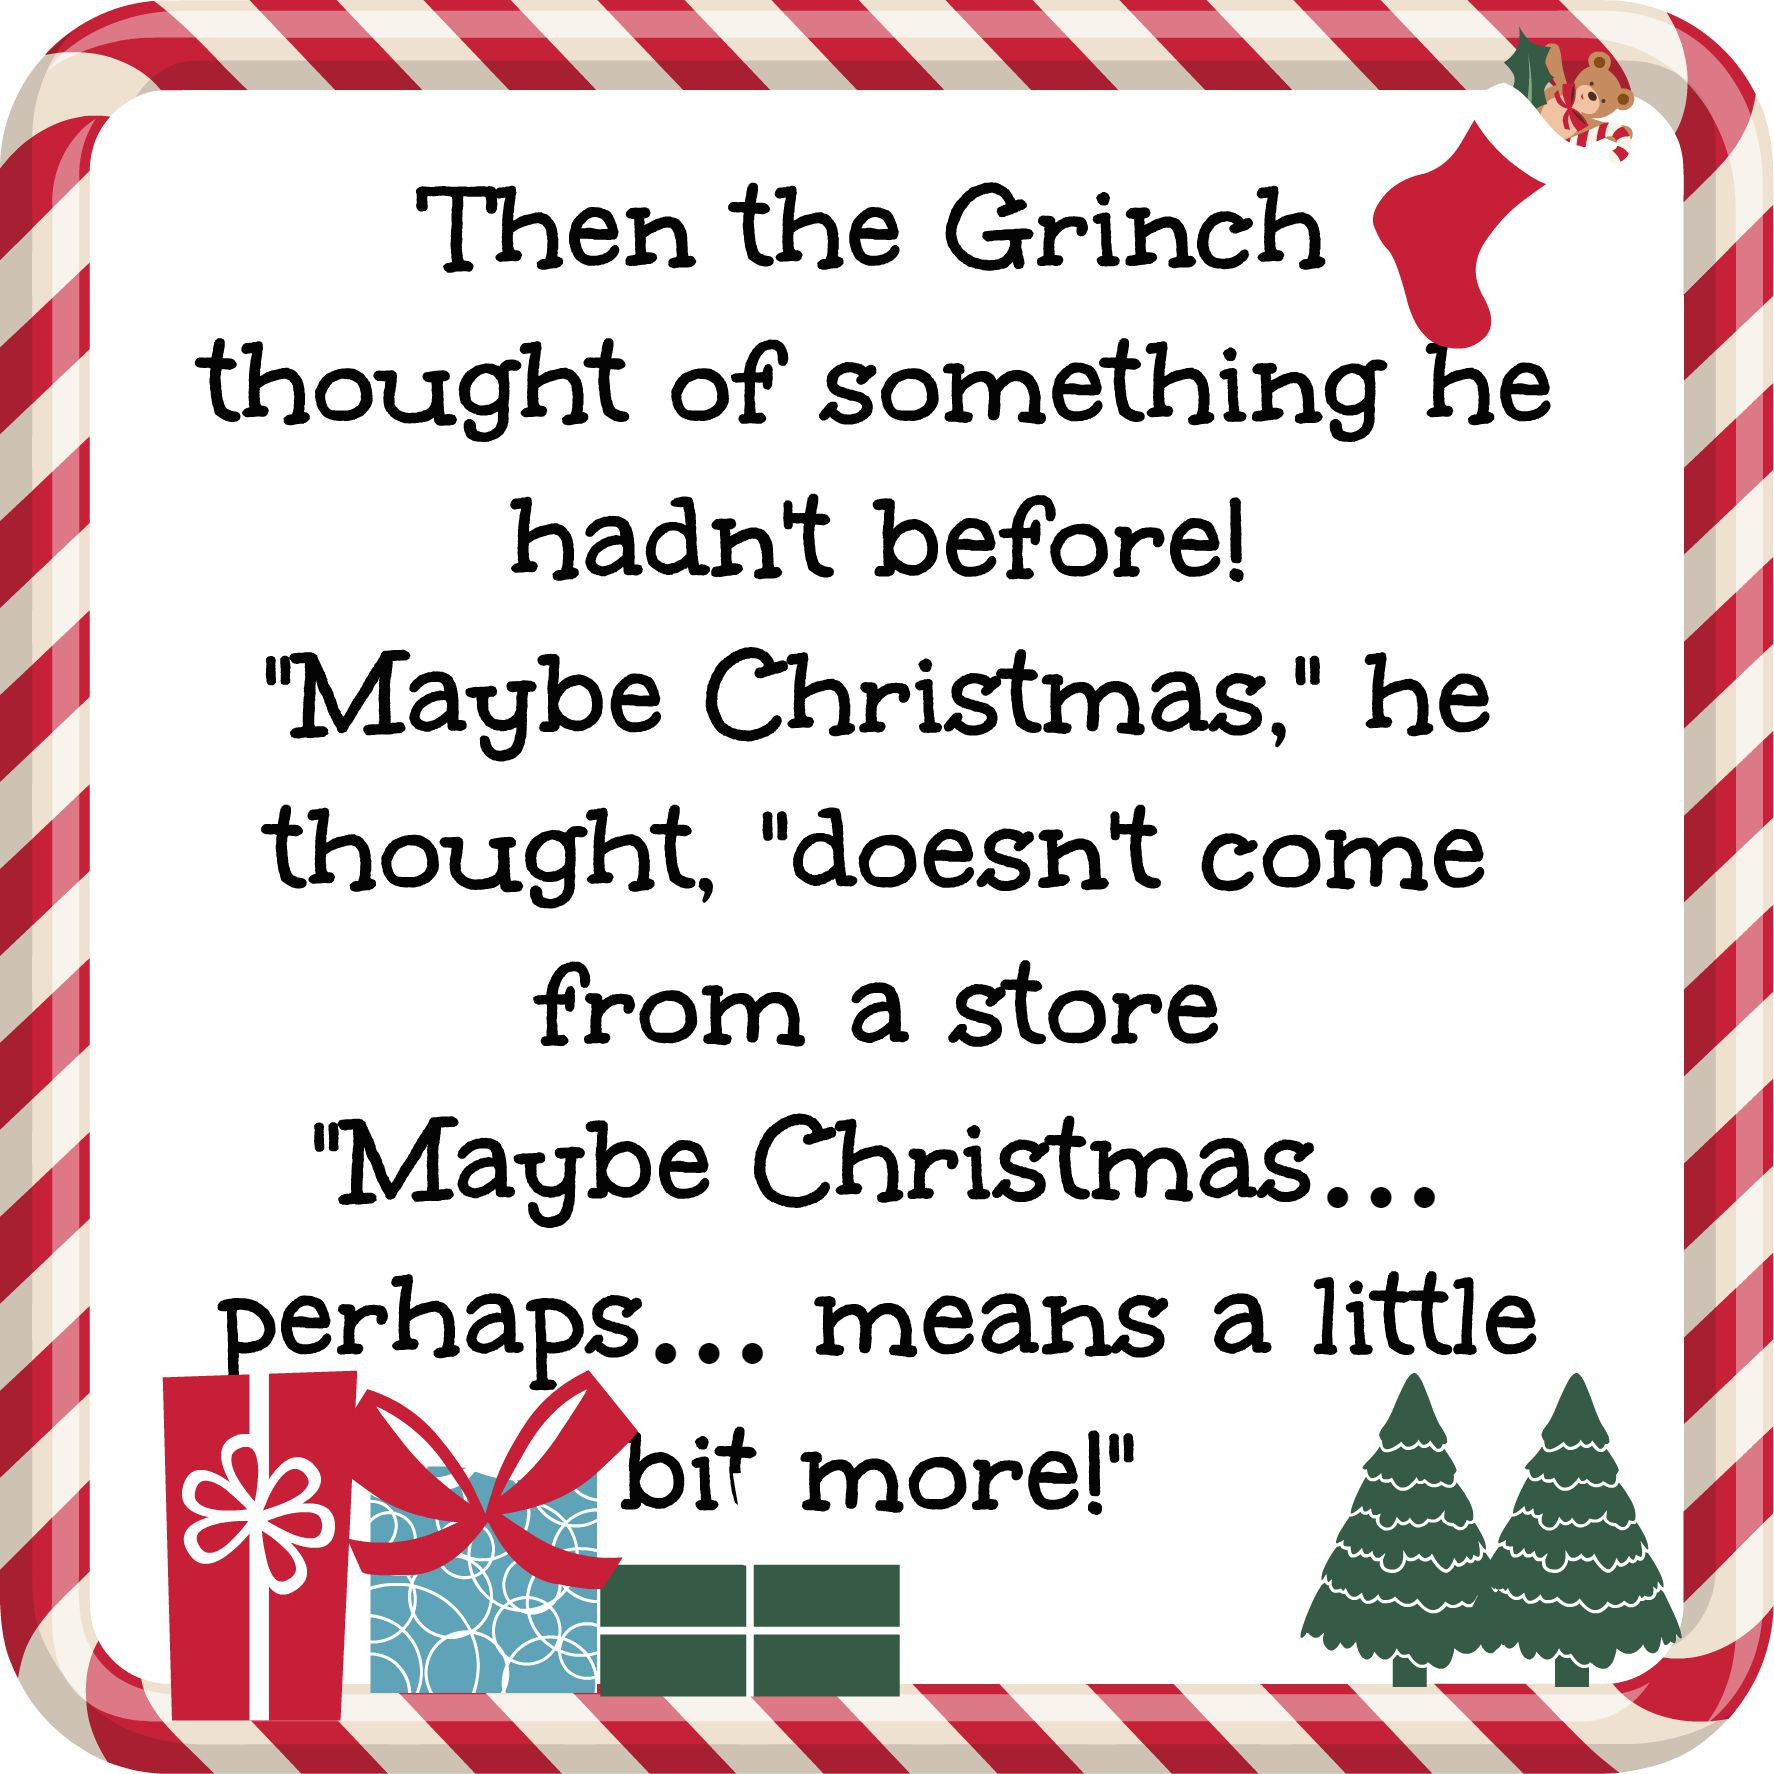 Grinch Christmas Quote  Making a Case for the Grinch